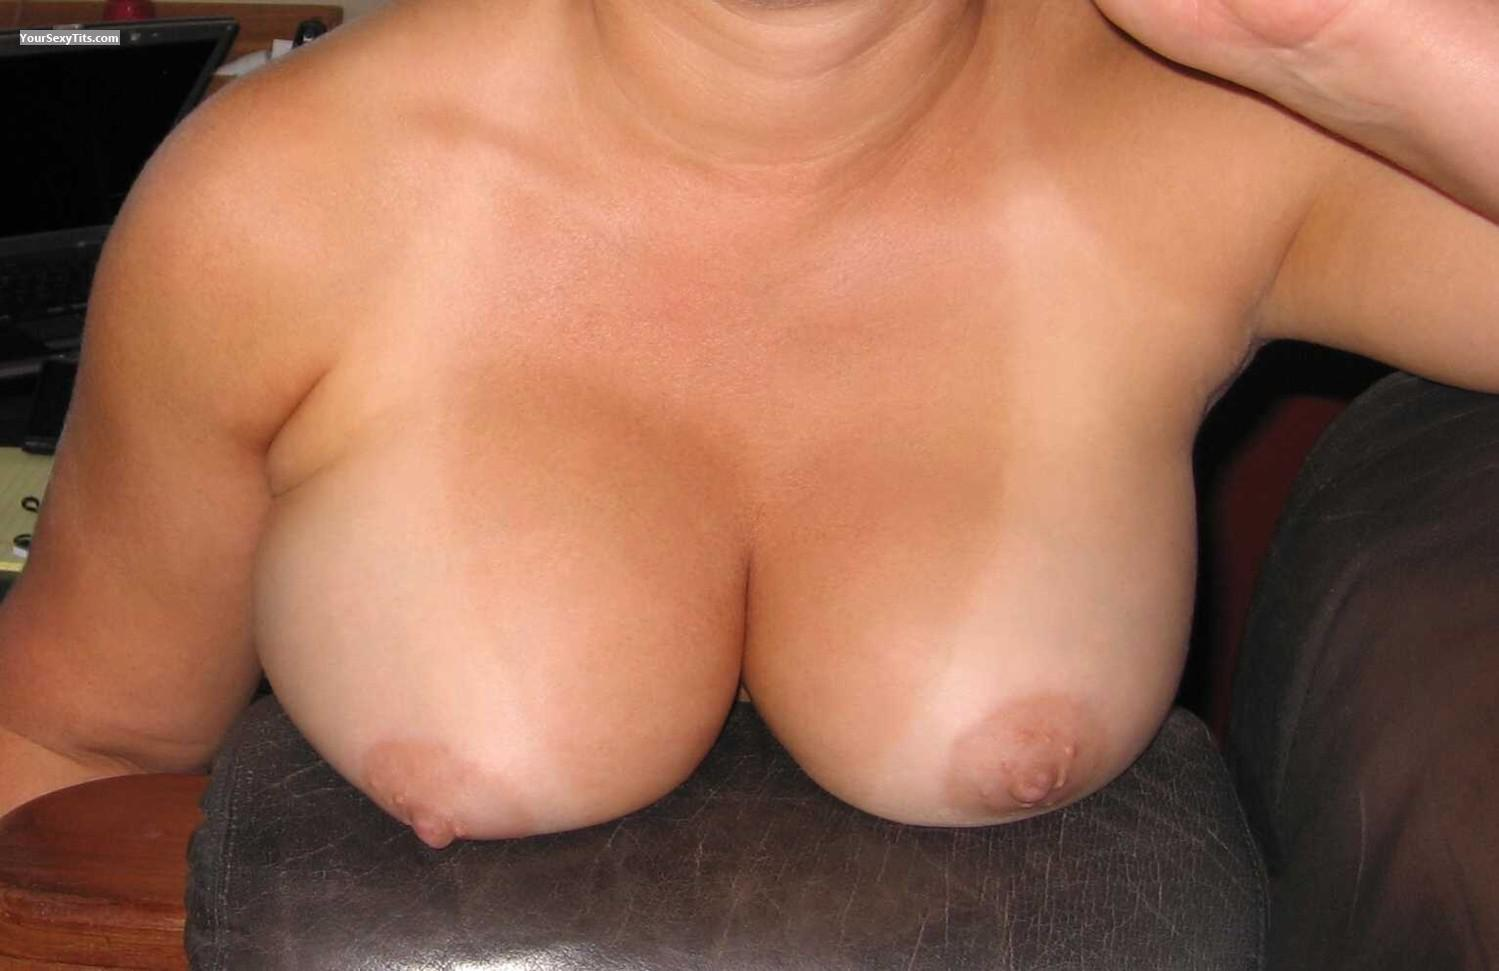 Tit Flash: My Medium Tits - Faans Flasher from United States